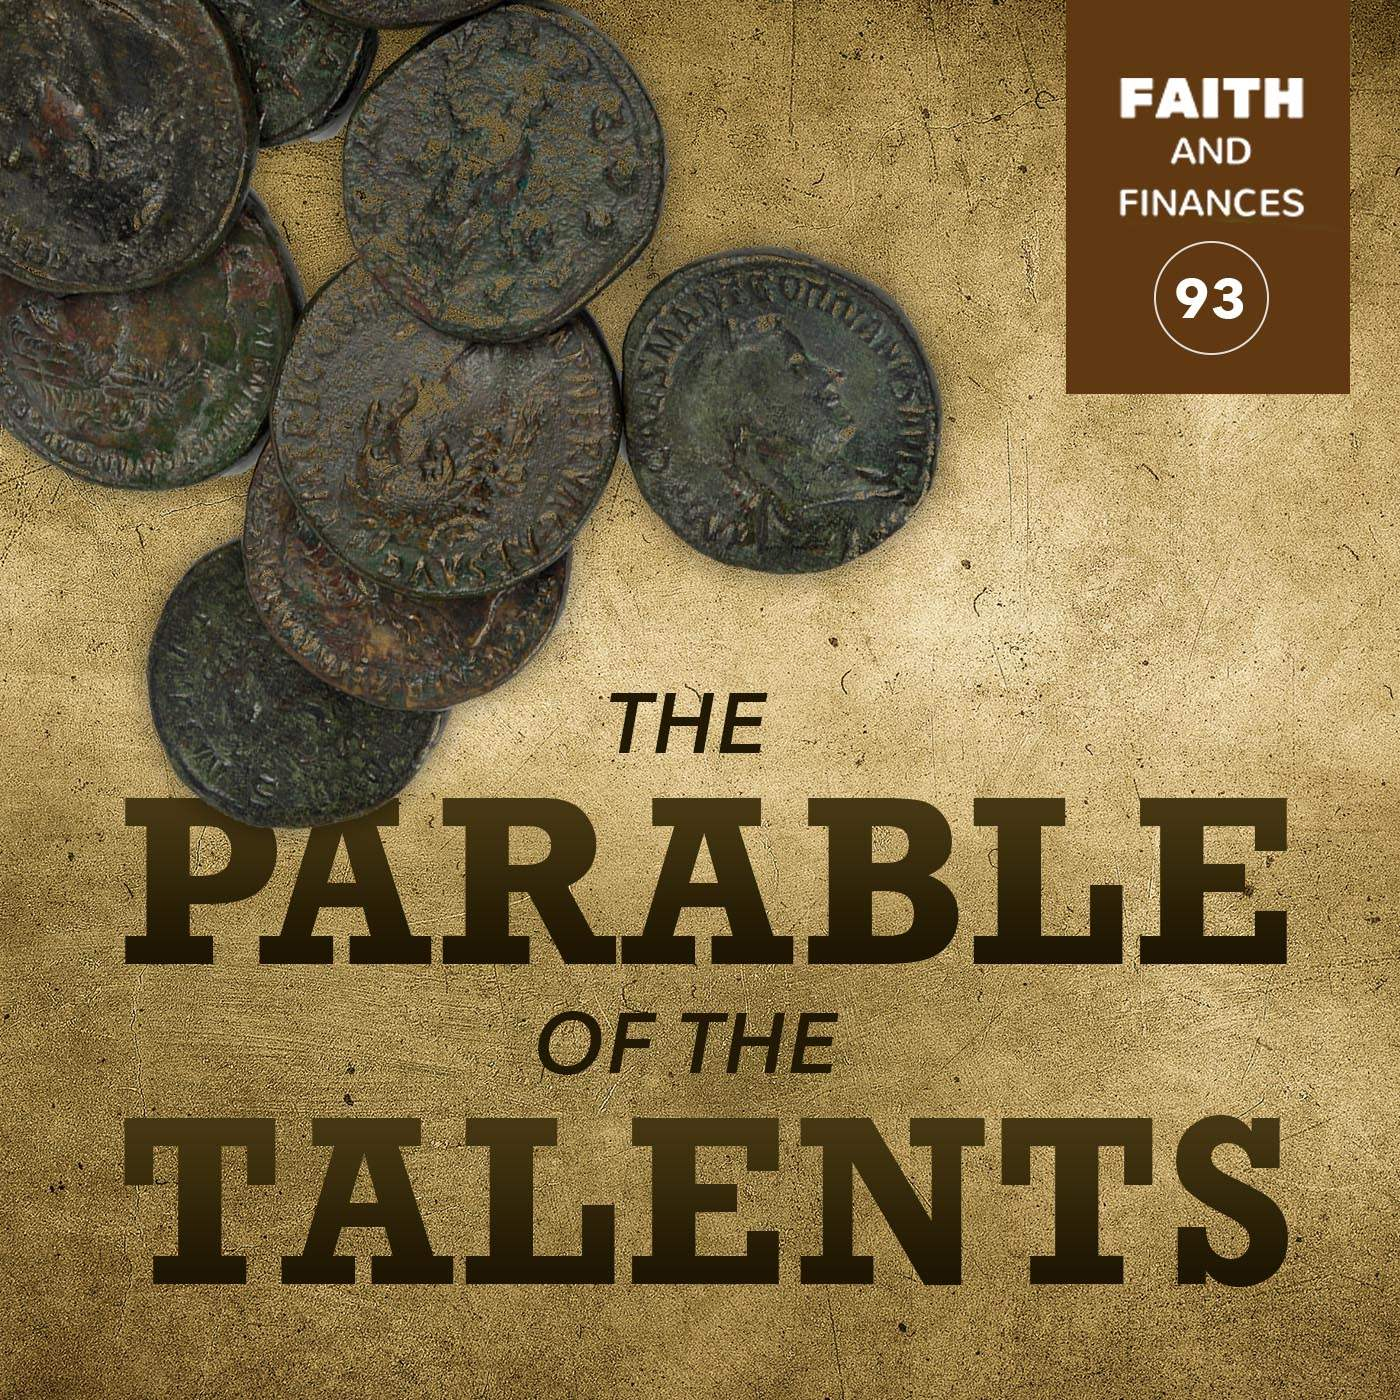 093: The Parable of the Talents